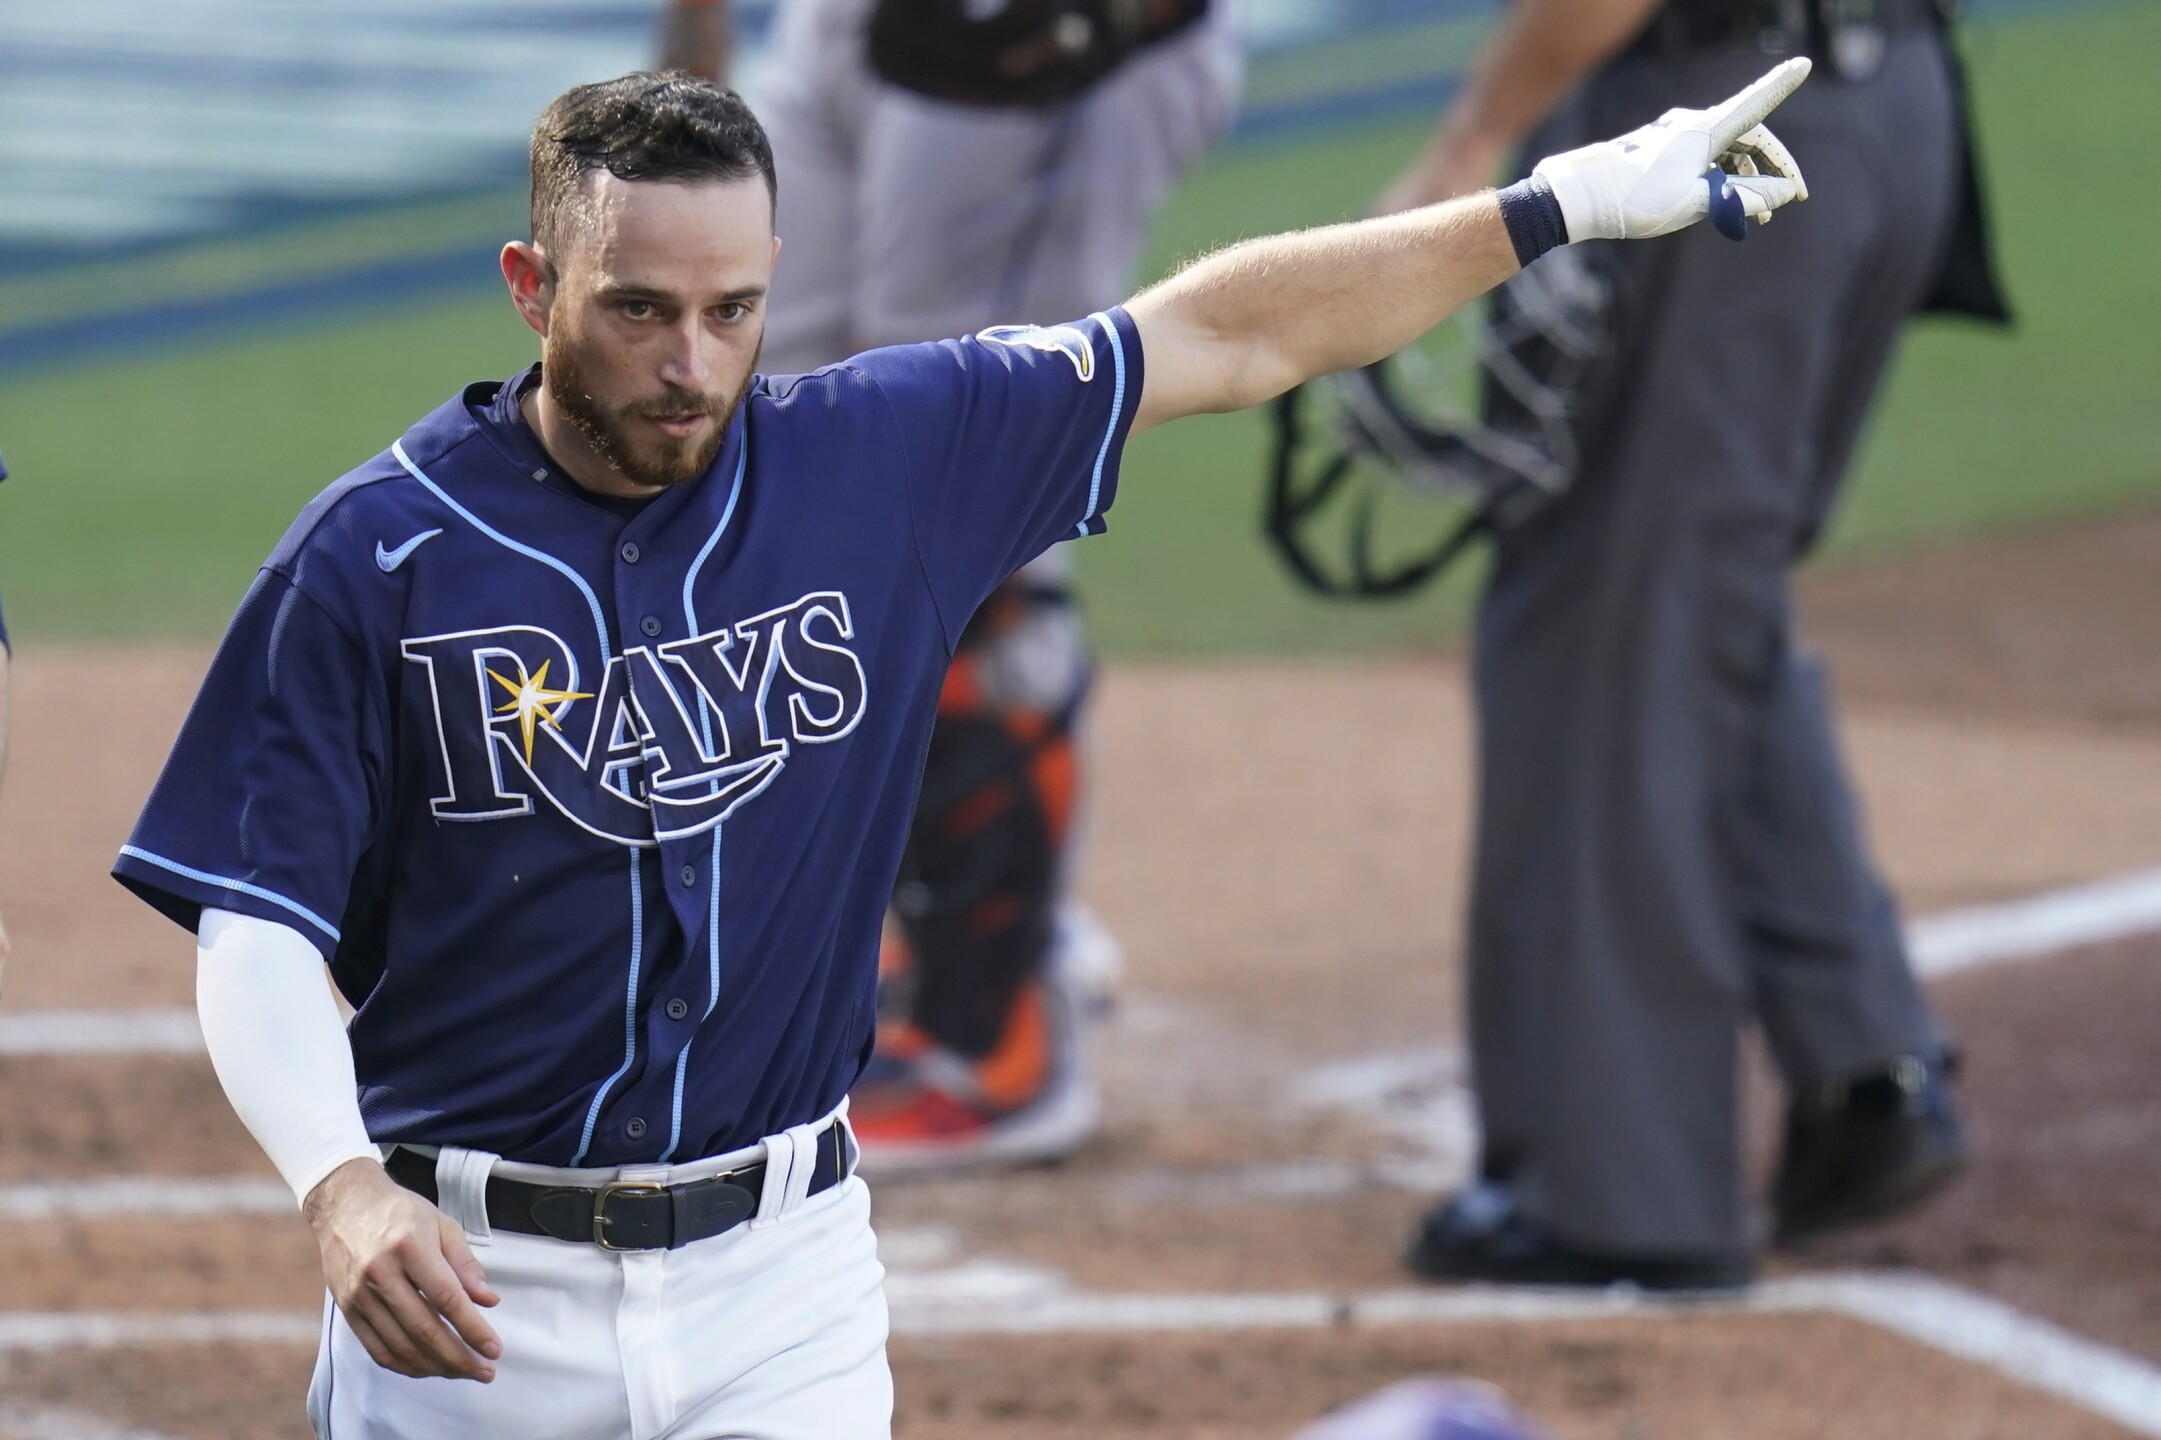 rays-tampa-bay-astros-ap-image-game-6